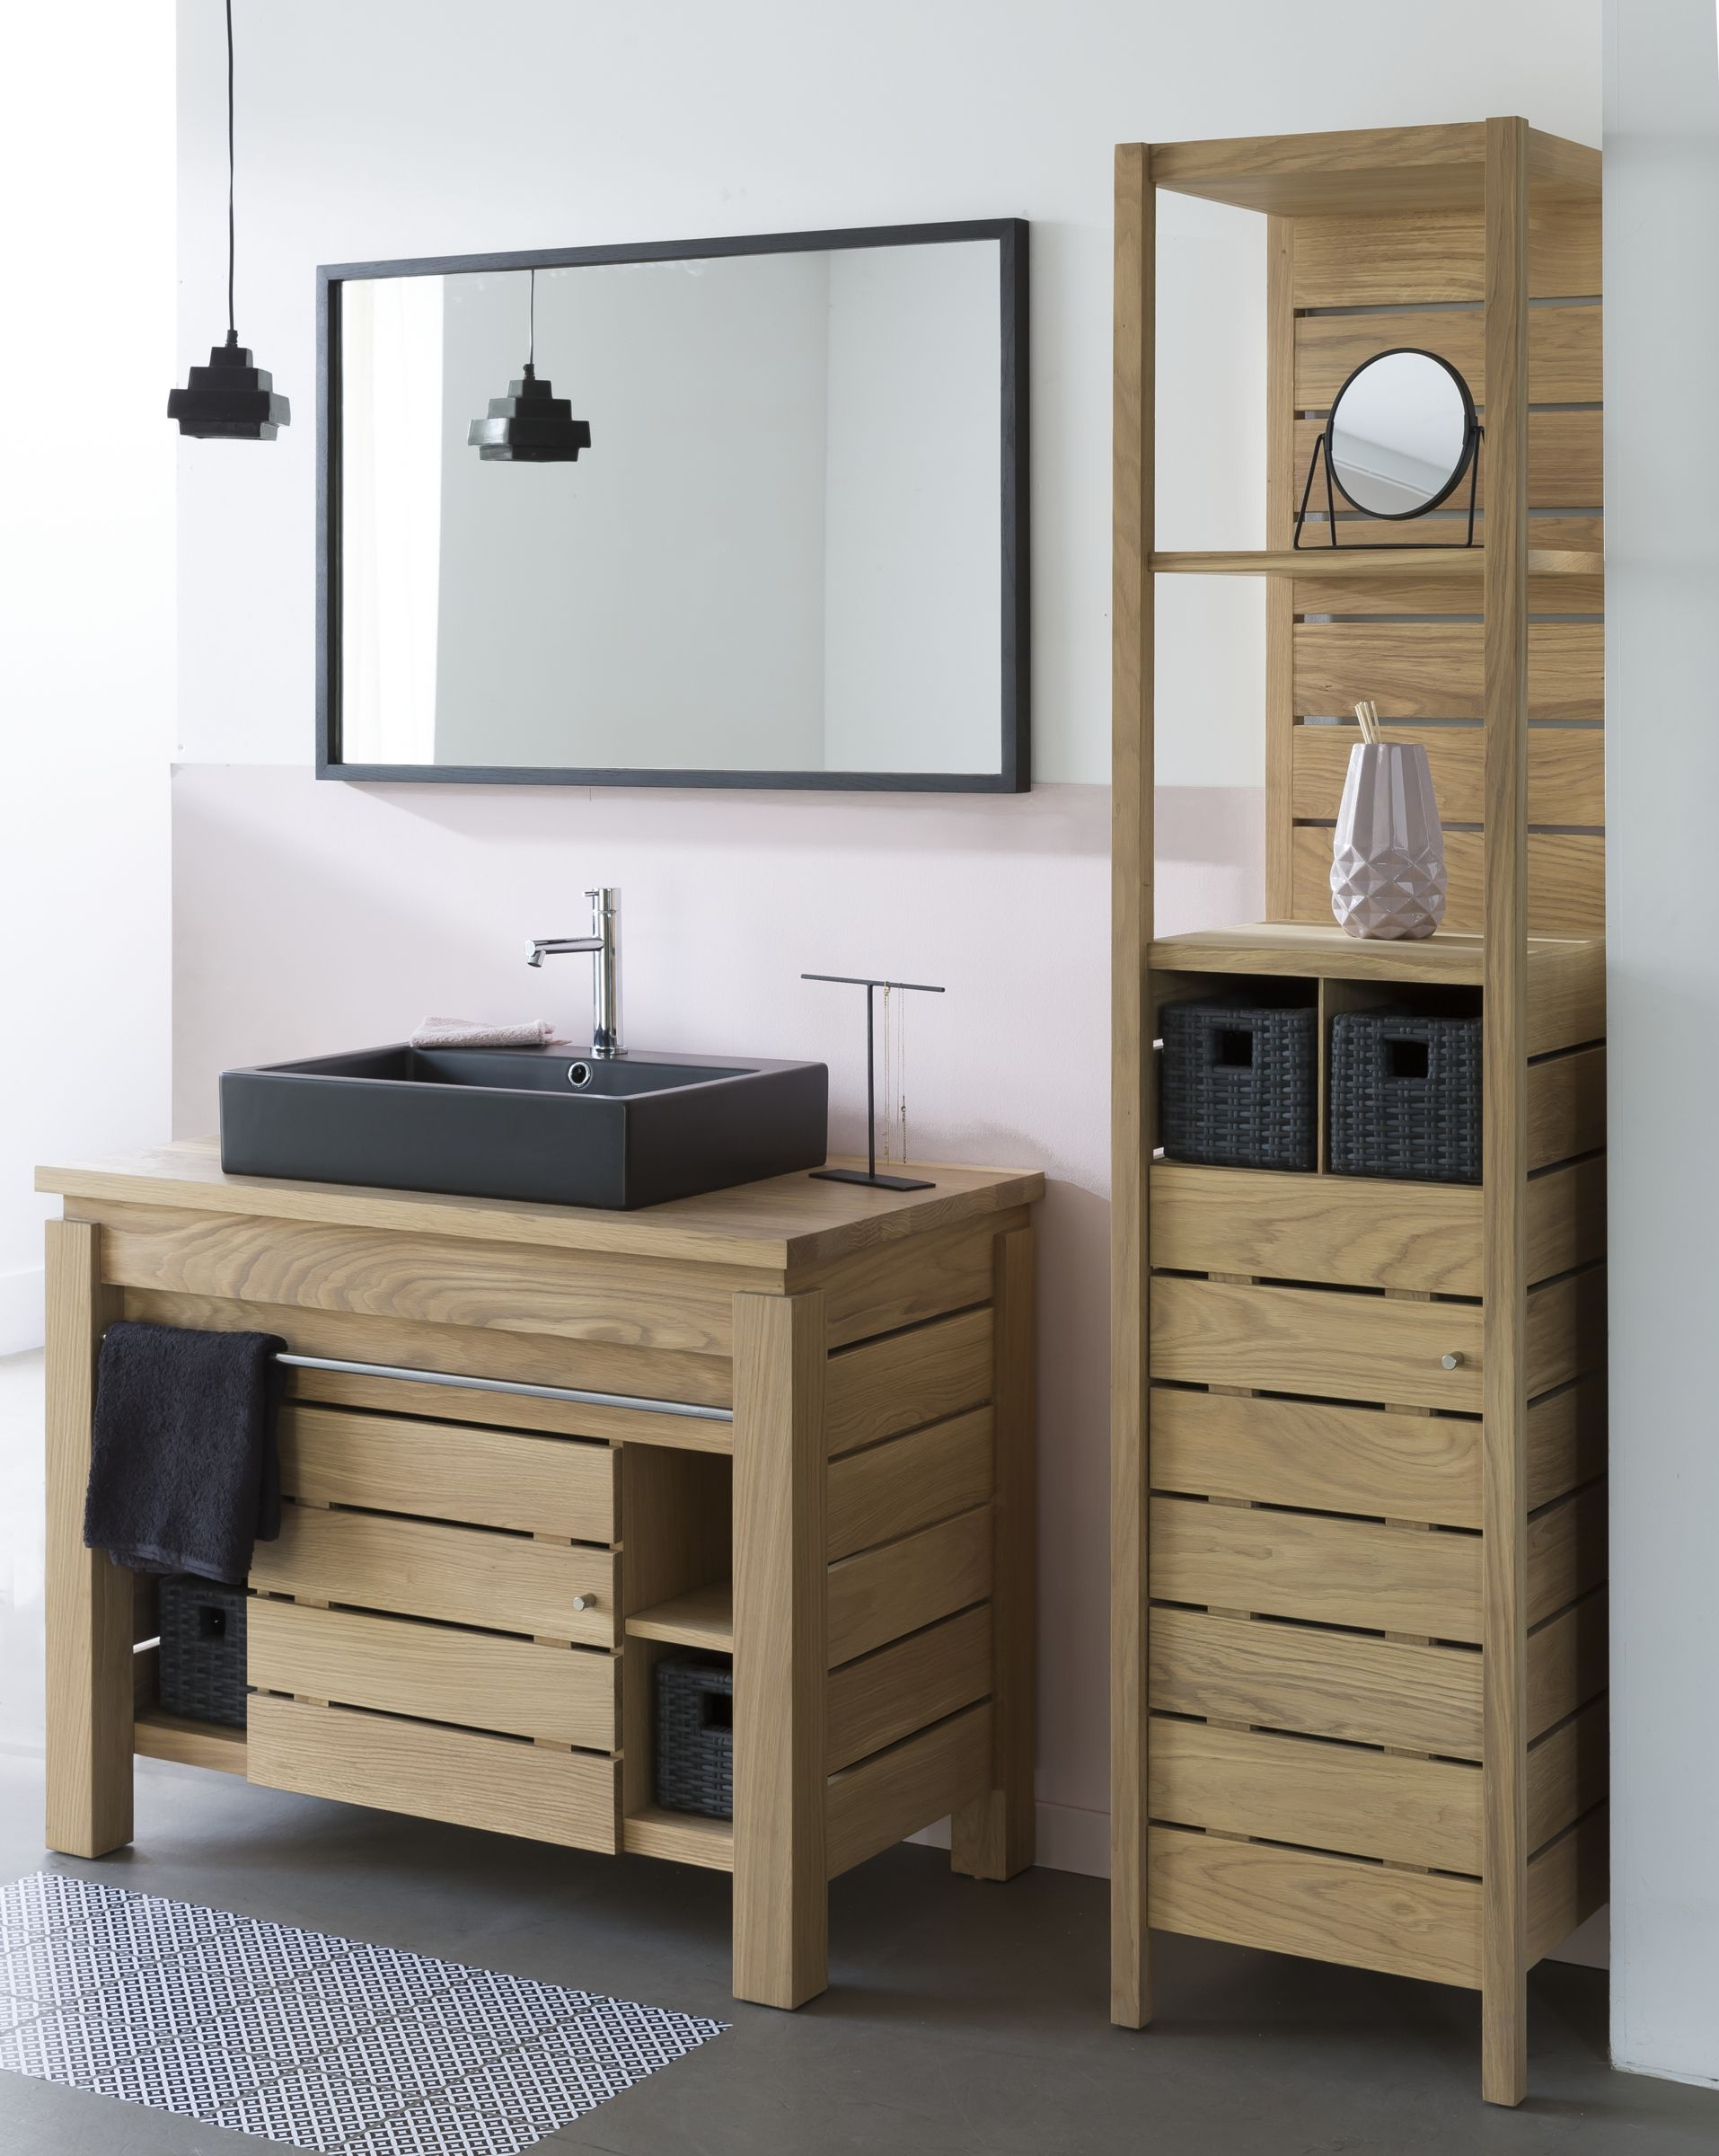 Line Art Bathroom Furniture : Origin by line art solid teak bathroom vanity with column